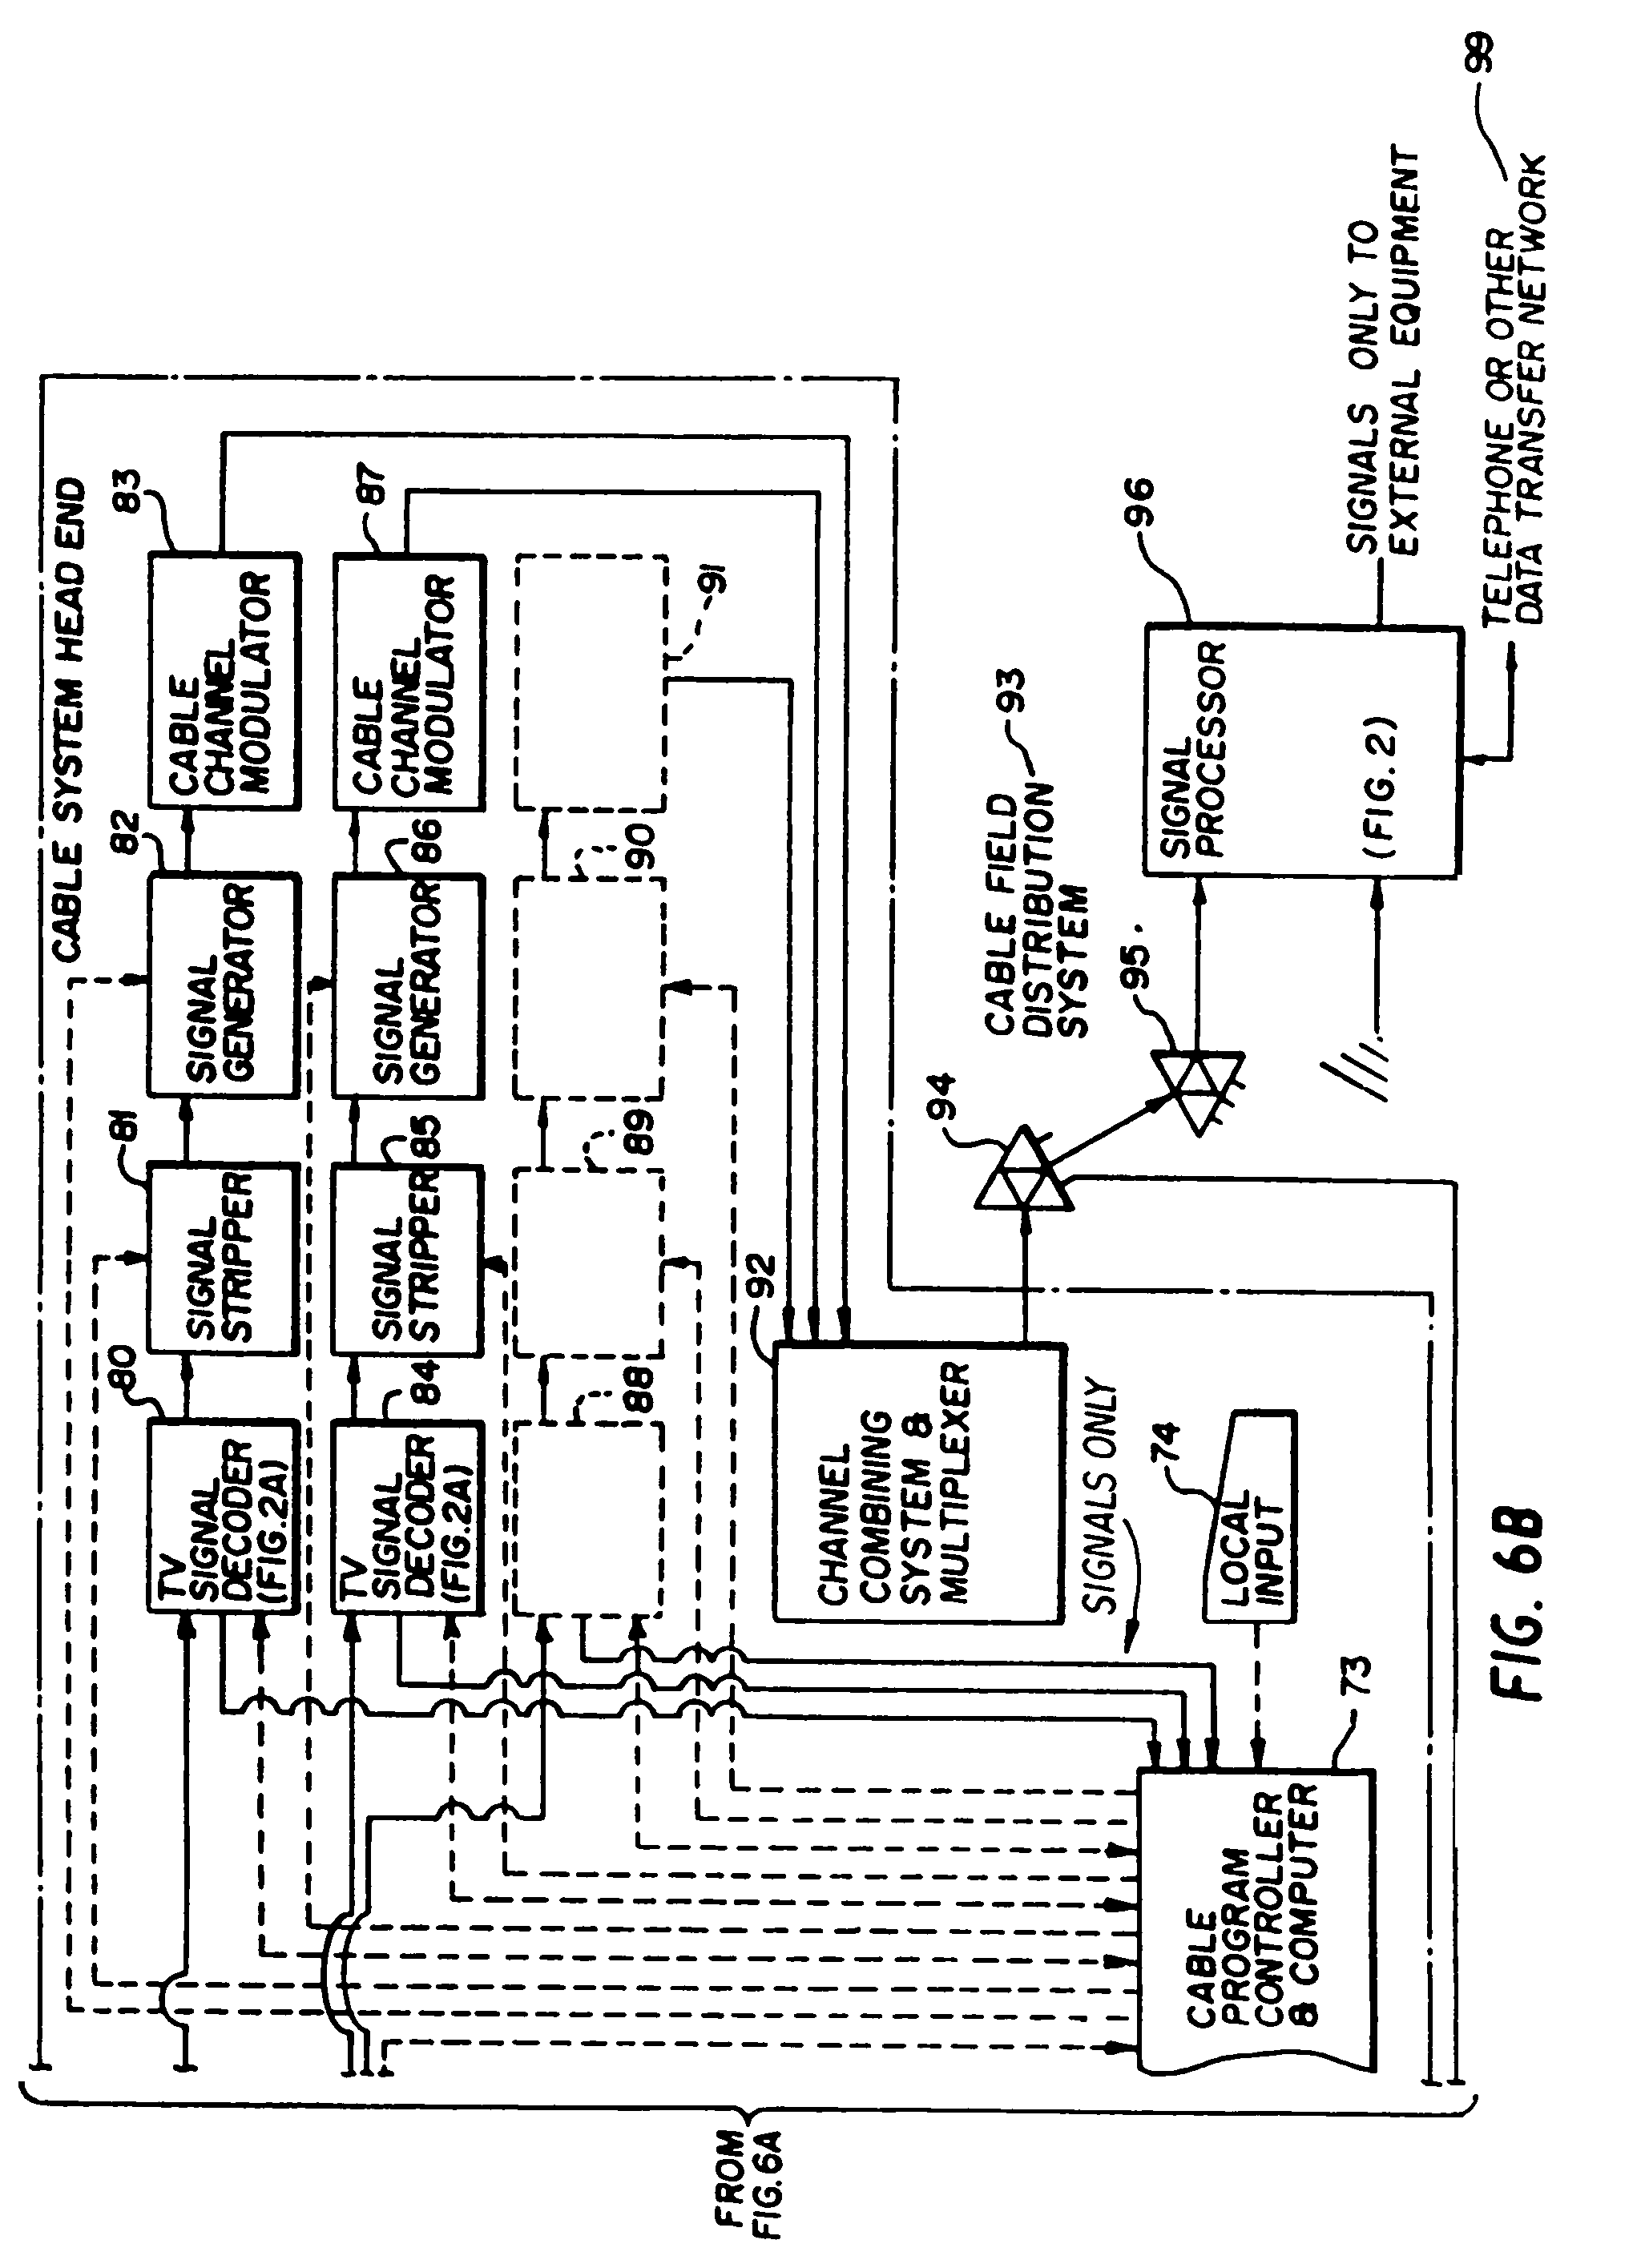 Us7966640b1 Signal Processing Apparatus And Methods Google Patents Lm 567 Ic Touch Tone Decoder